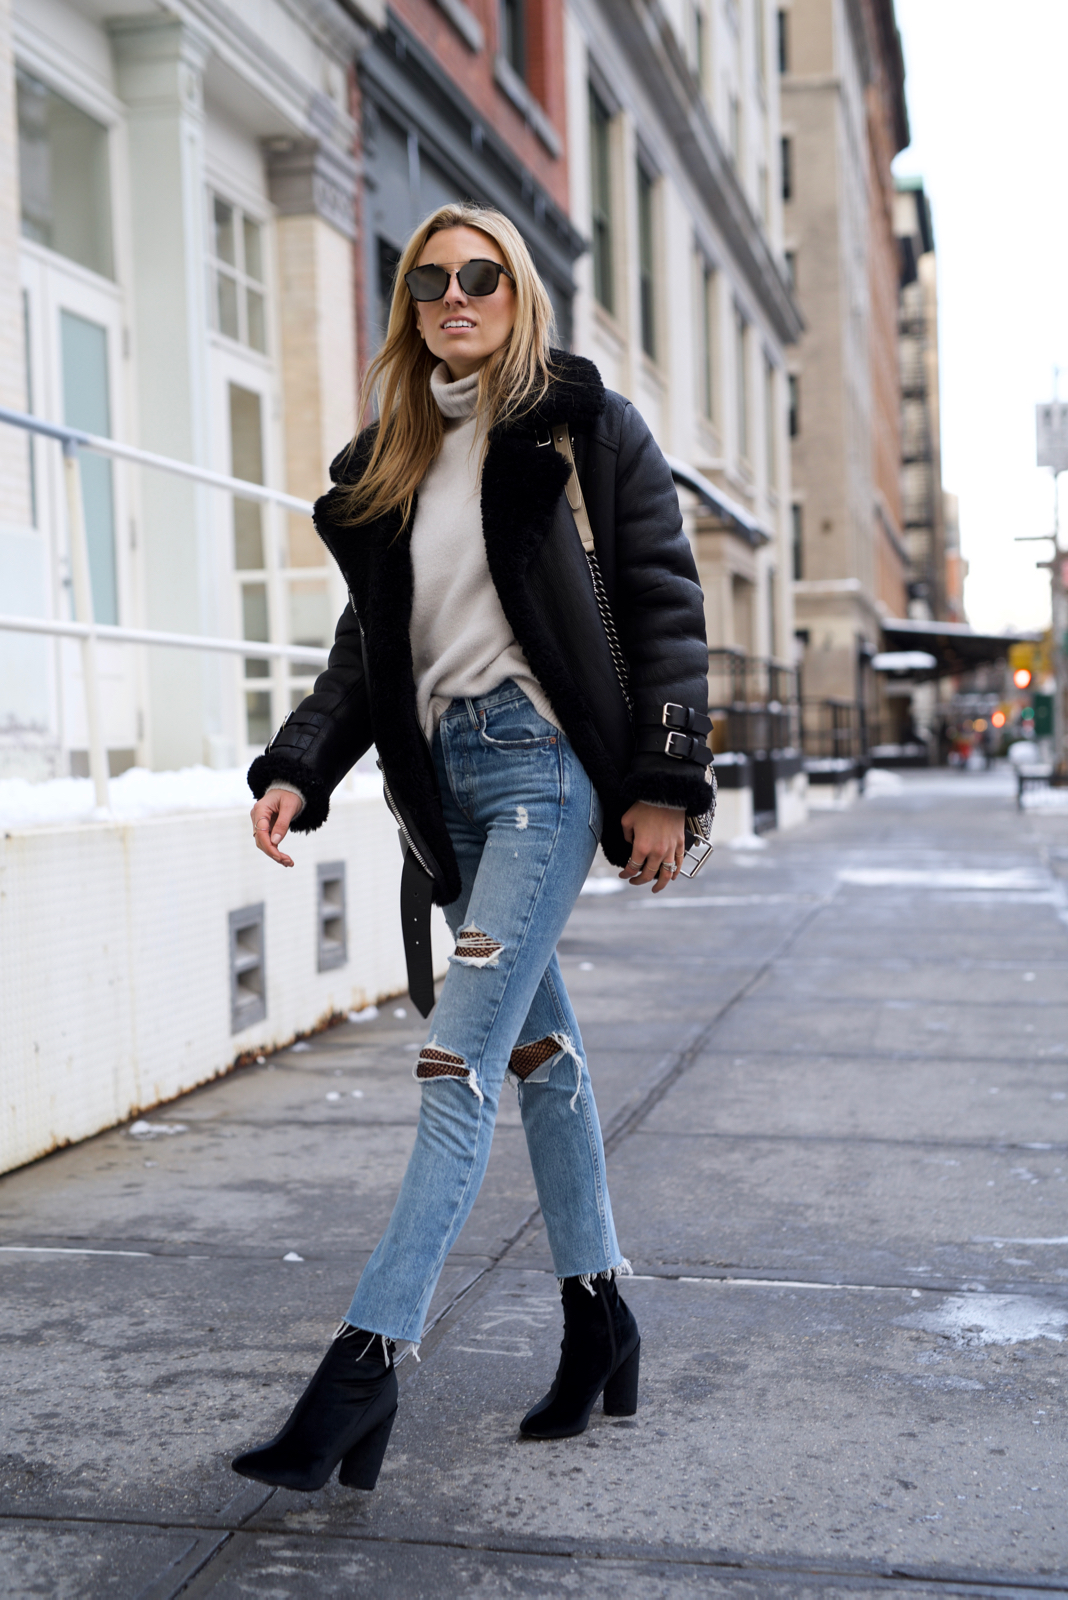 How to wear fishnets and ripped jeans, Acne Velocite coat, Velvet booties, Dior Sunglasses, Chanel boy bag